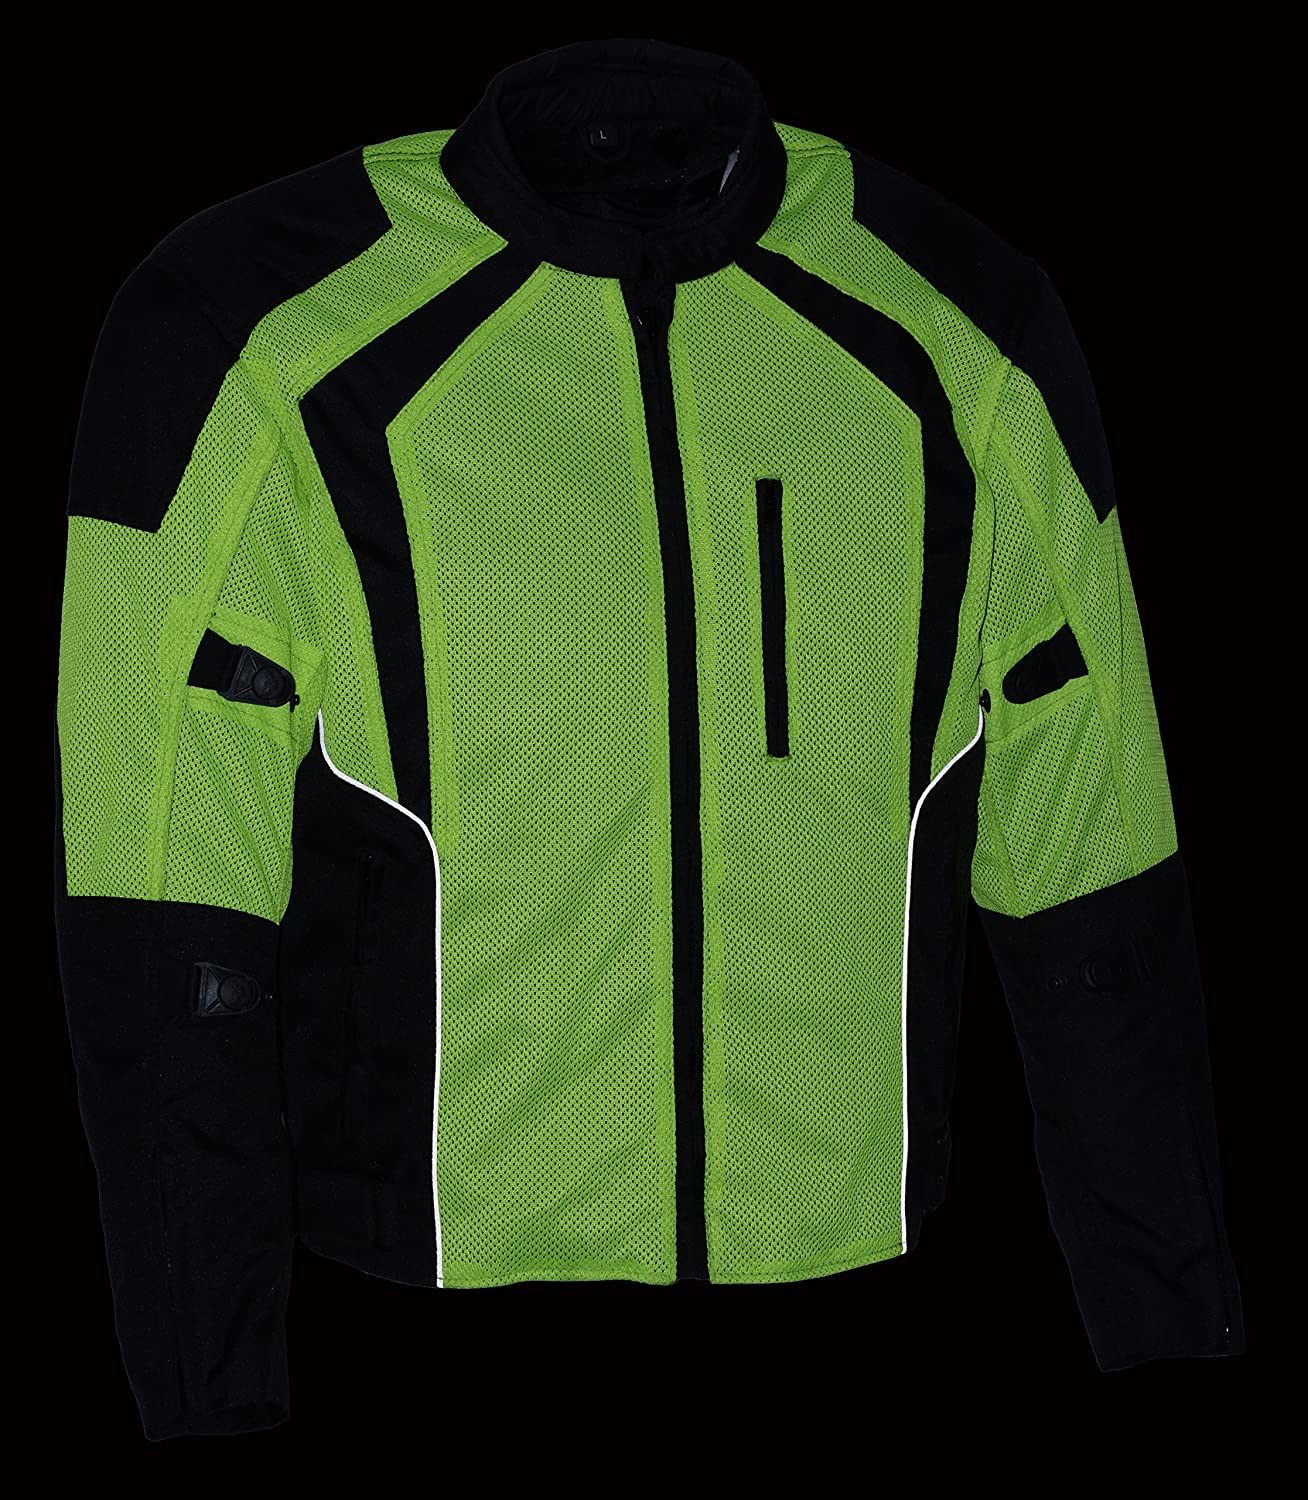 Milwaukee Performance Mens Nylon//Mesh Combo Racing Jacket with Armor BLACK//NEON GREEN, MD